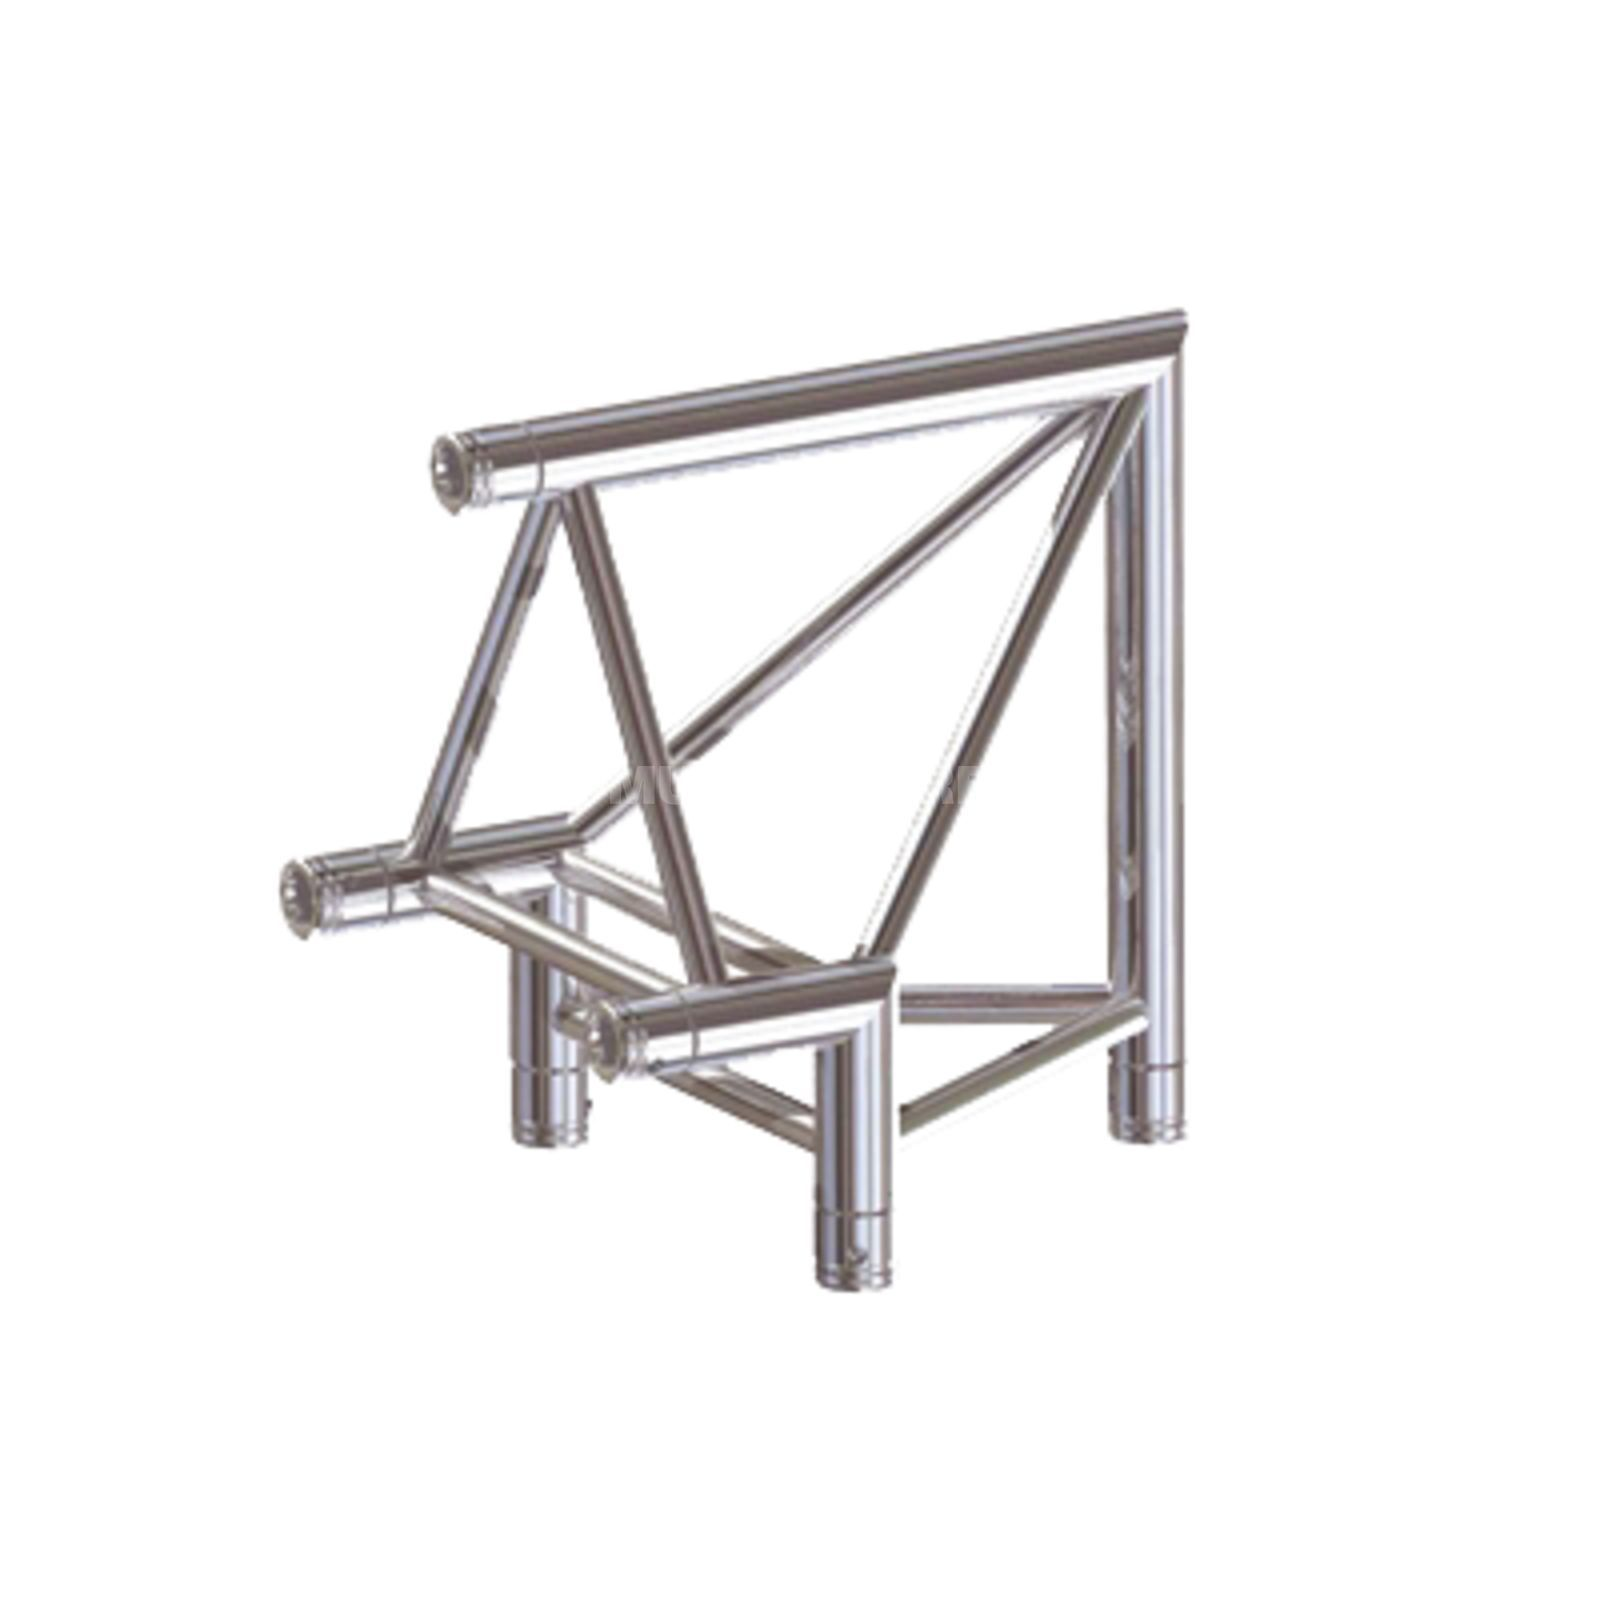 Global Truss F43 2-Way Corner C24 90°  Product Image